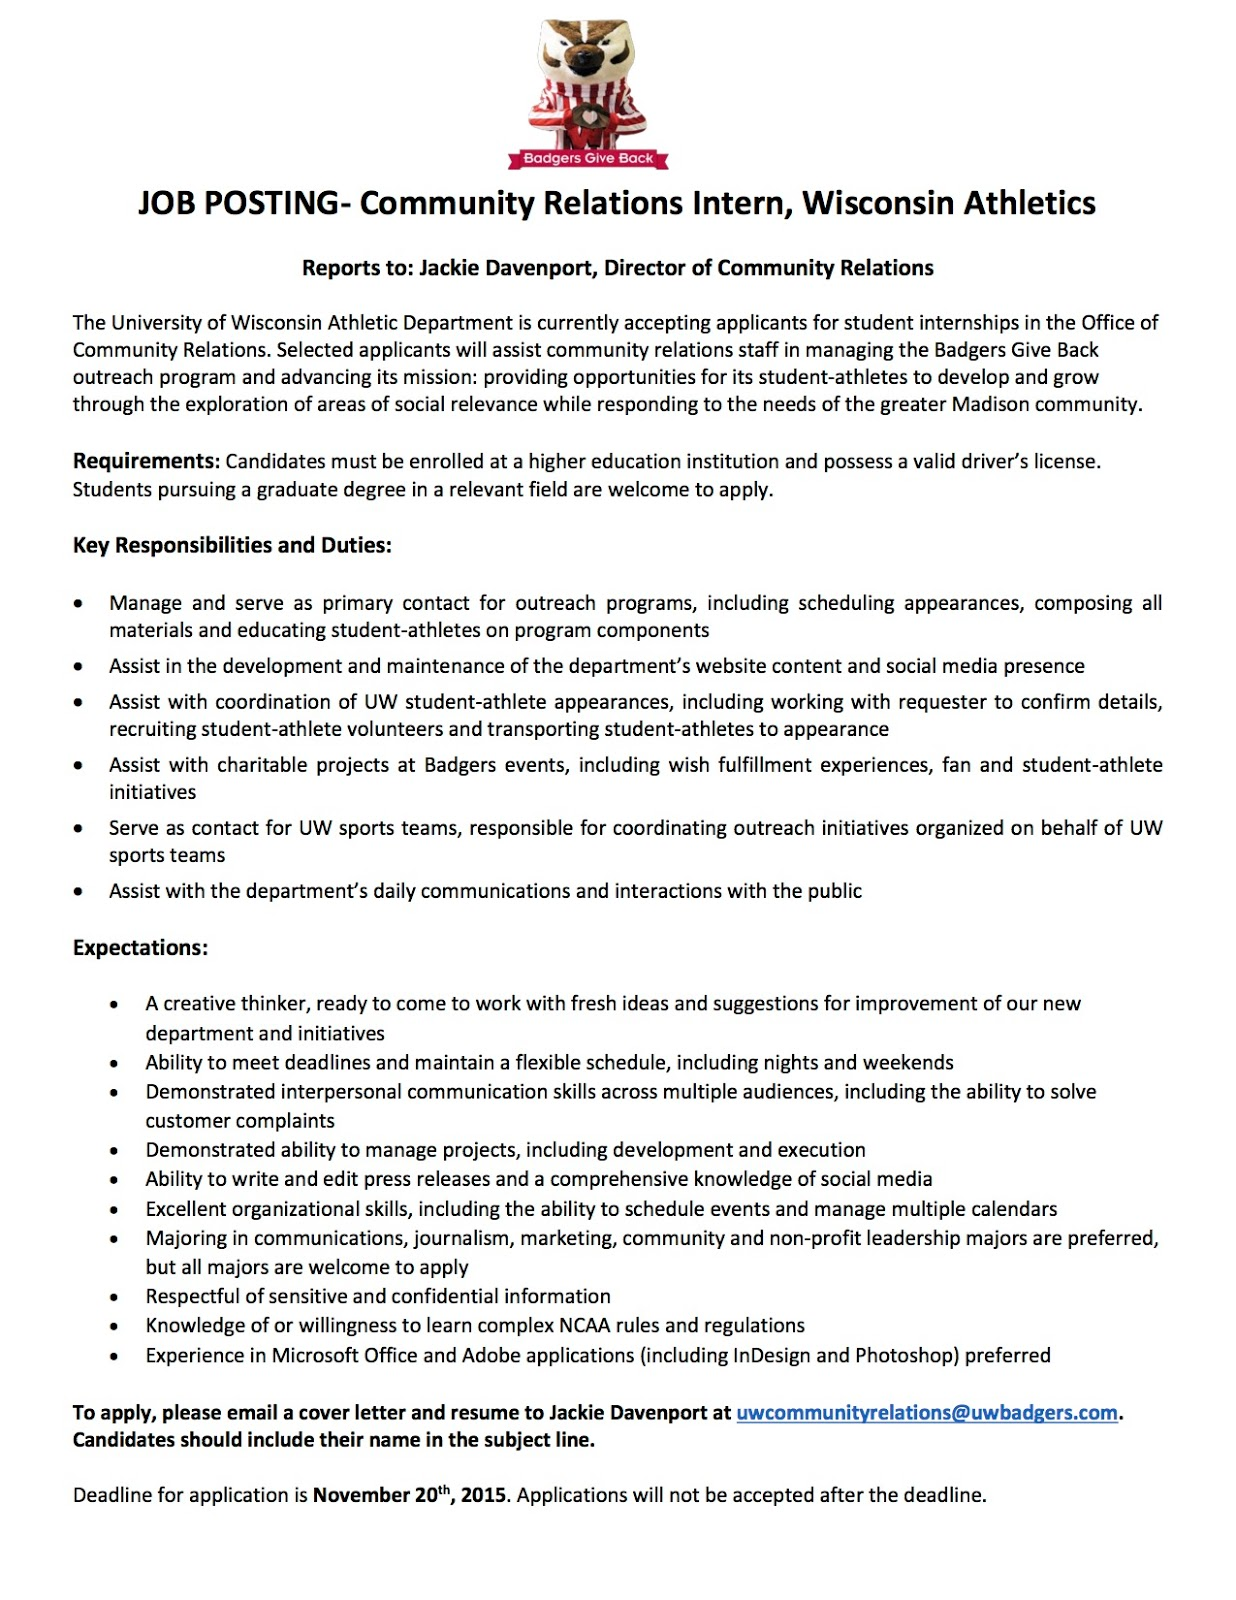 Internship With UW Athletics Community Relations